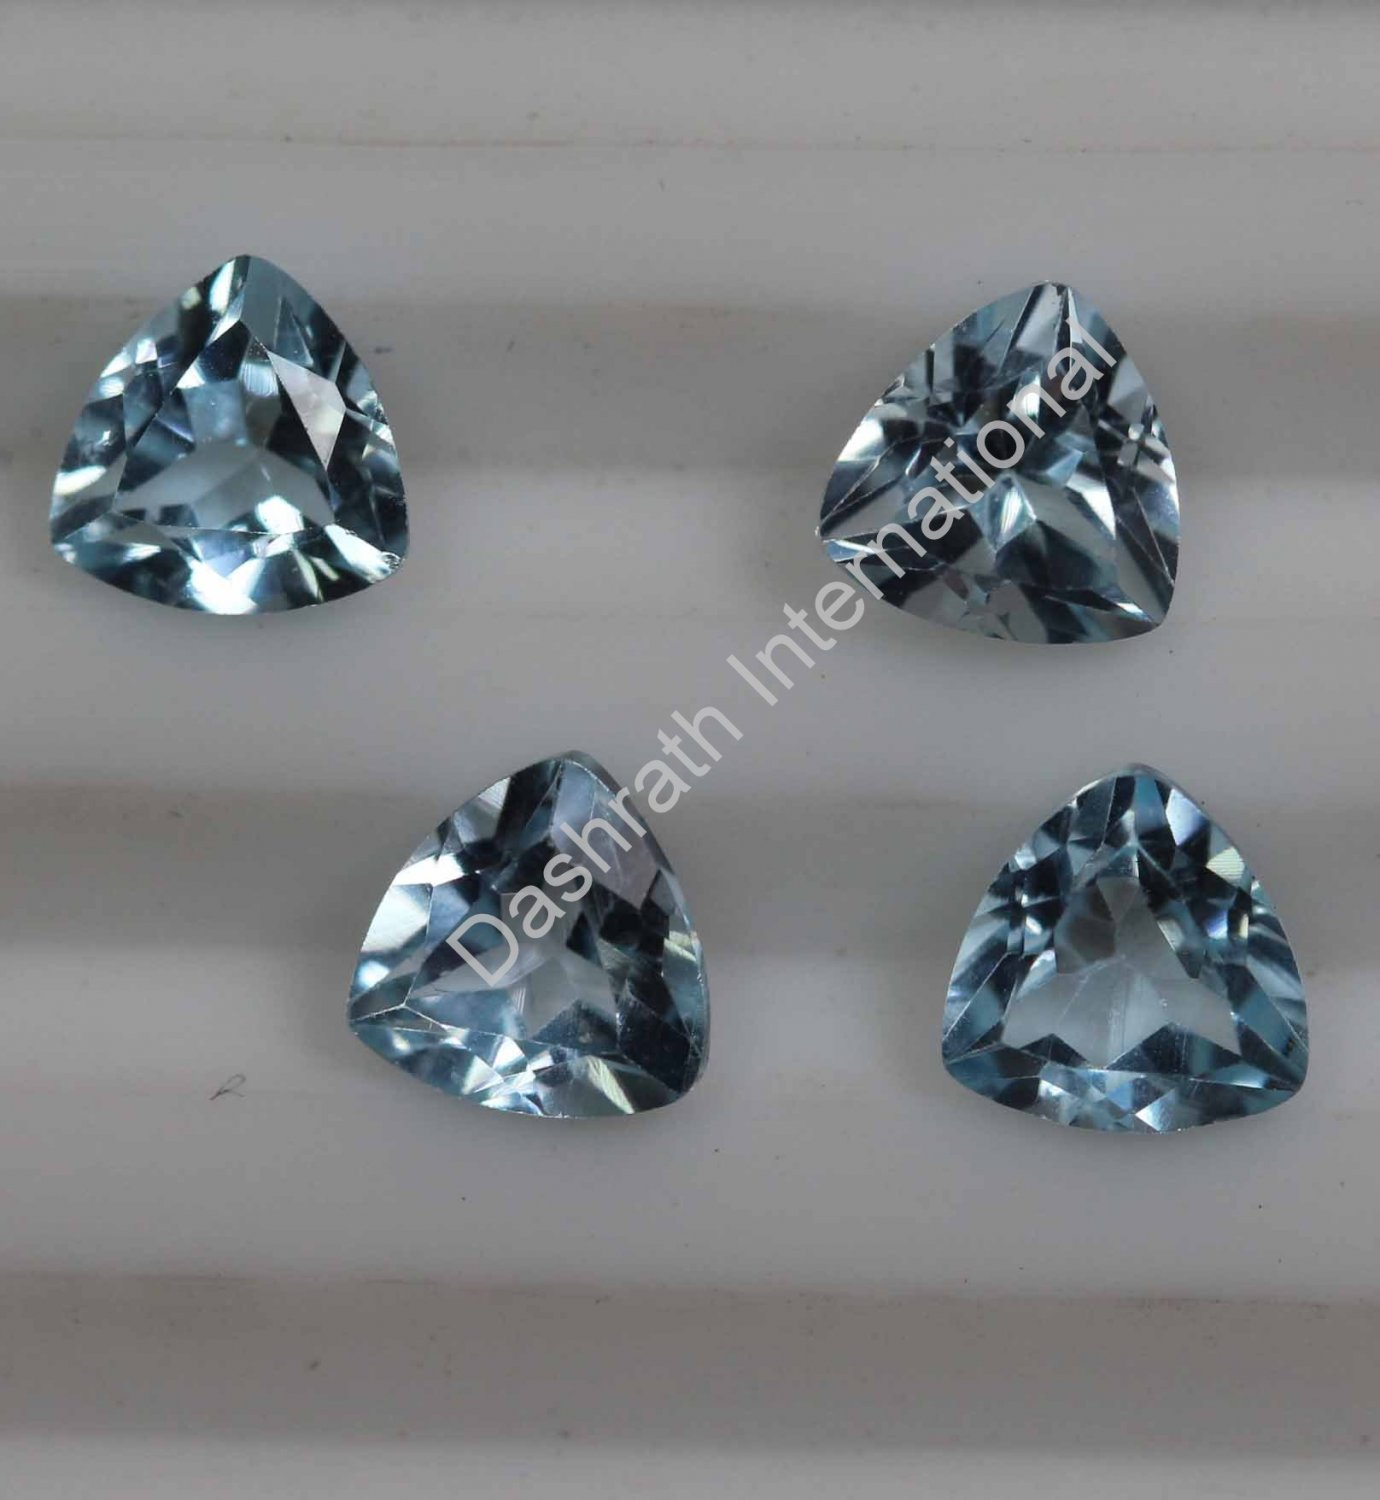 8mm Natural Sky Blue Topaz Faceted Cut Trillion 25 Pieces Lot  Top Quality Loose Gemstone